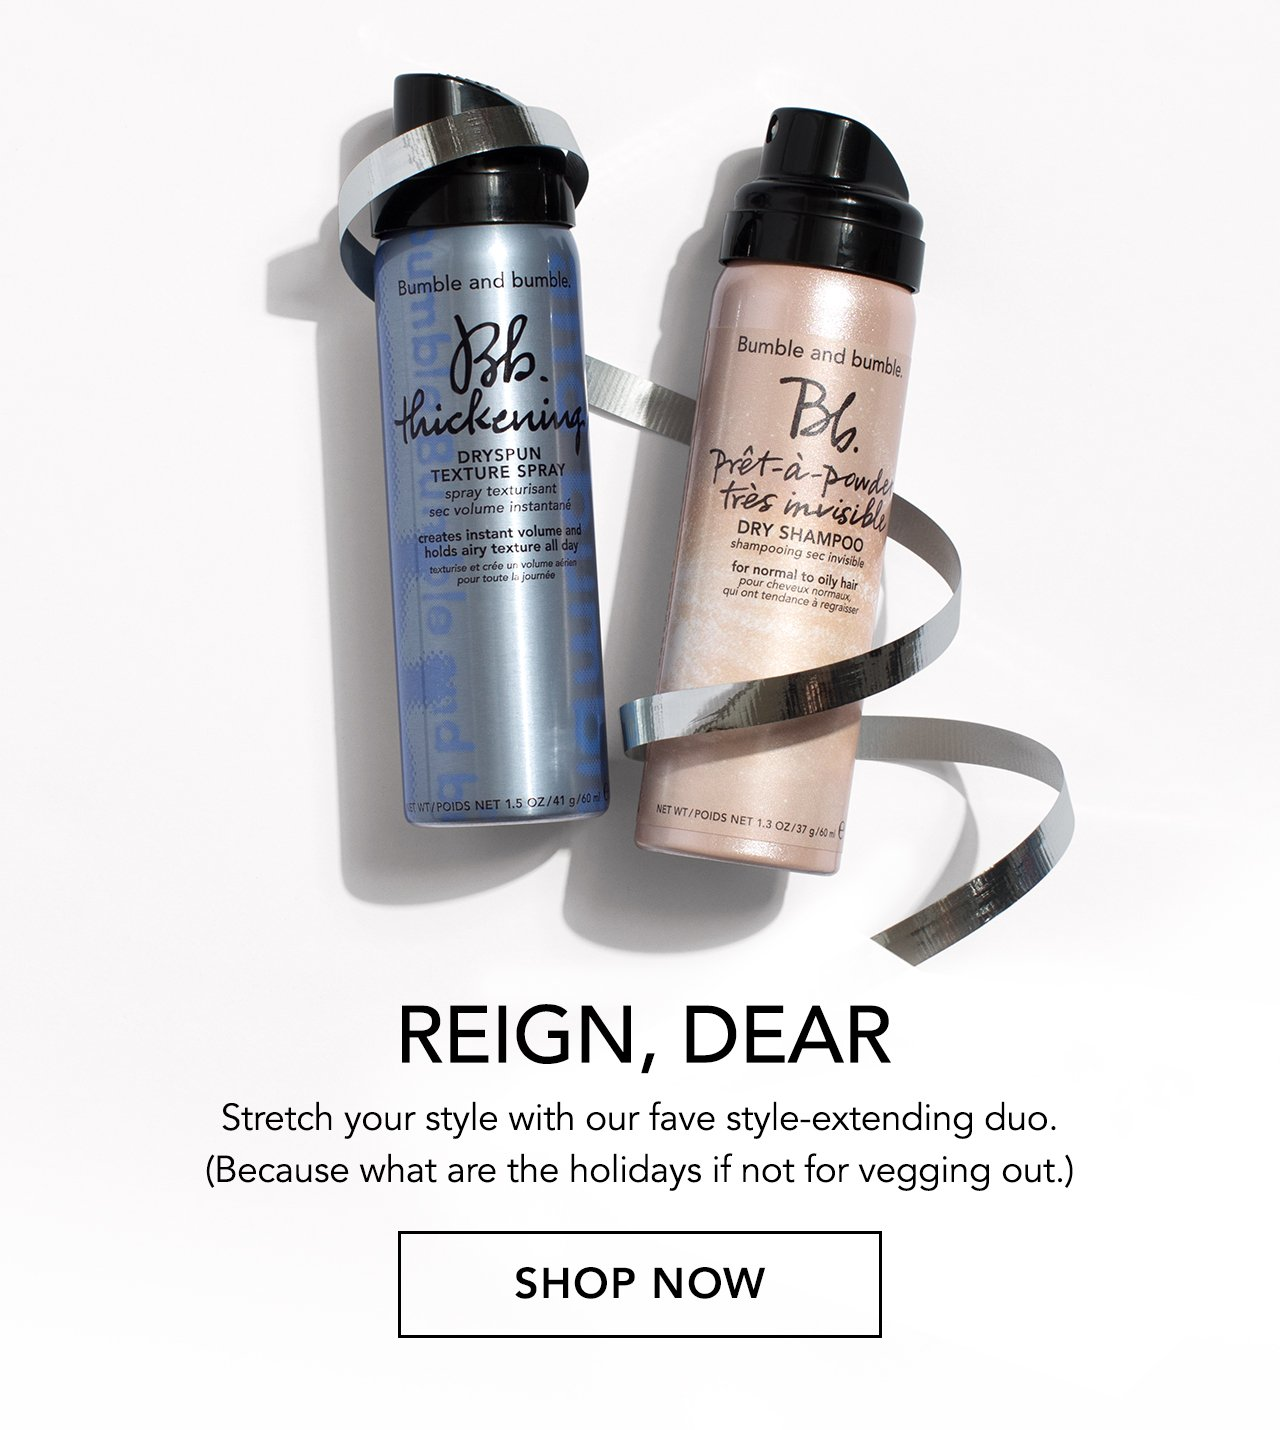 REIGN, DEAR - Stretch your style with our fave style-extending duo. (Because what are the holidays if not for vegging out.) SHOP NOW